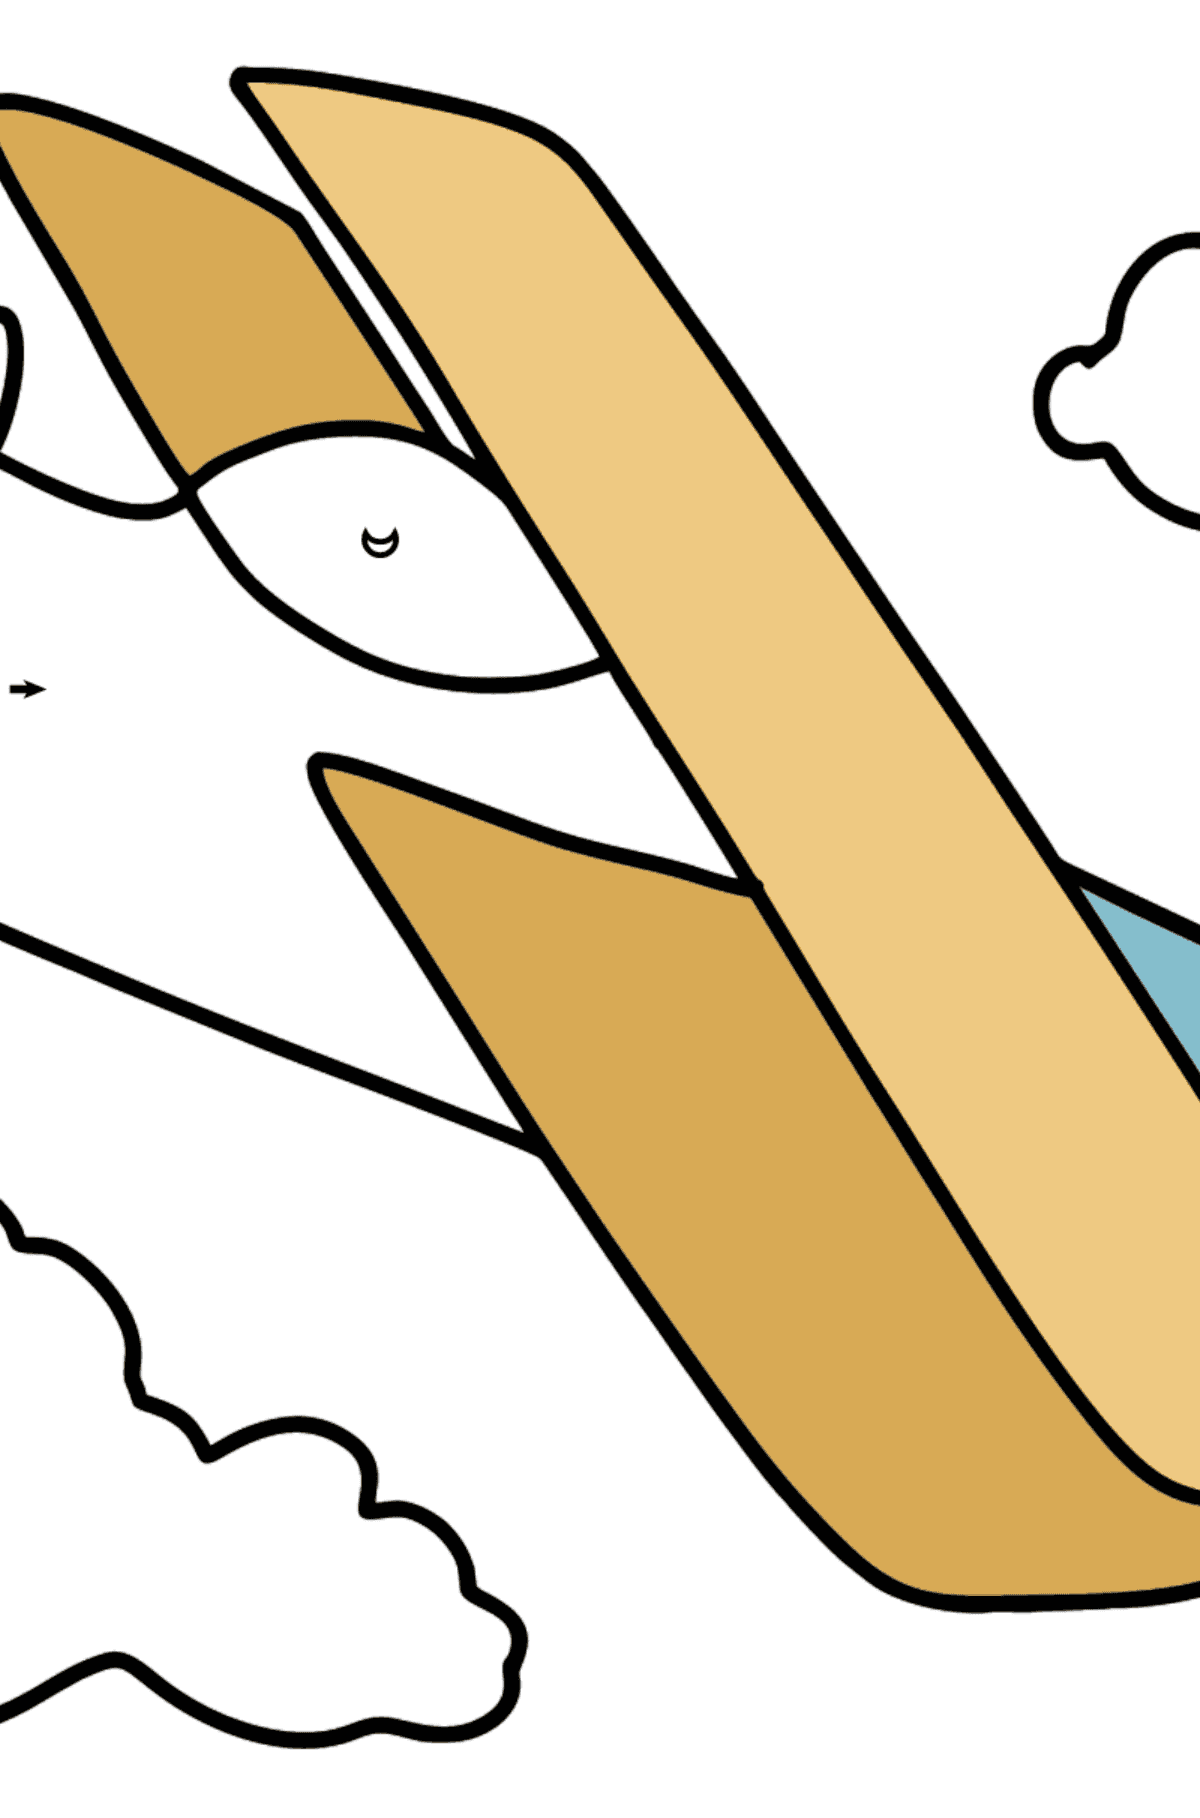 Simple Airplane coloring page - Coloring by Symbols for Kids